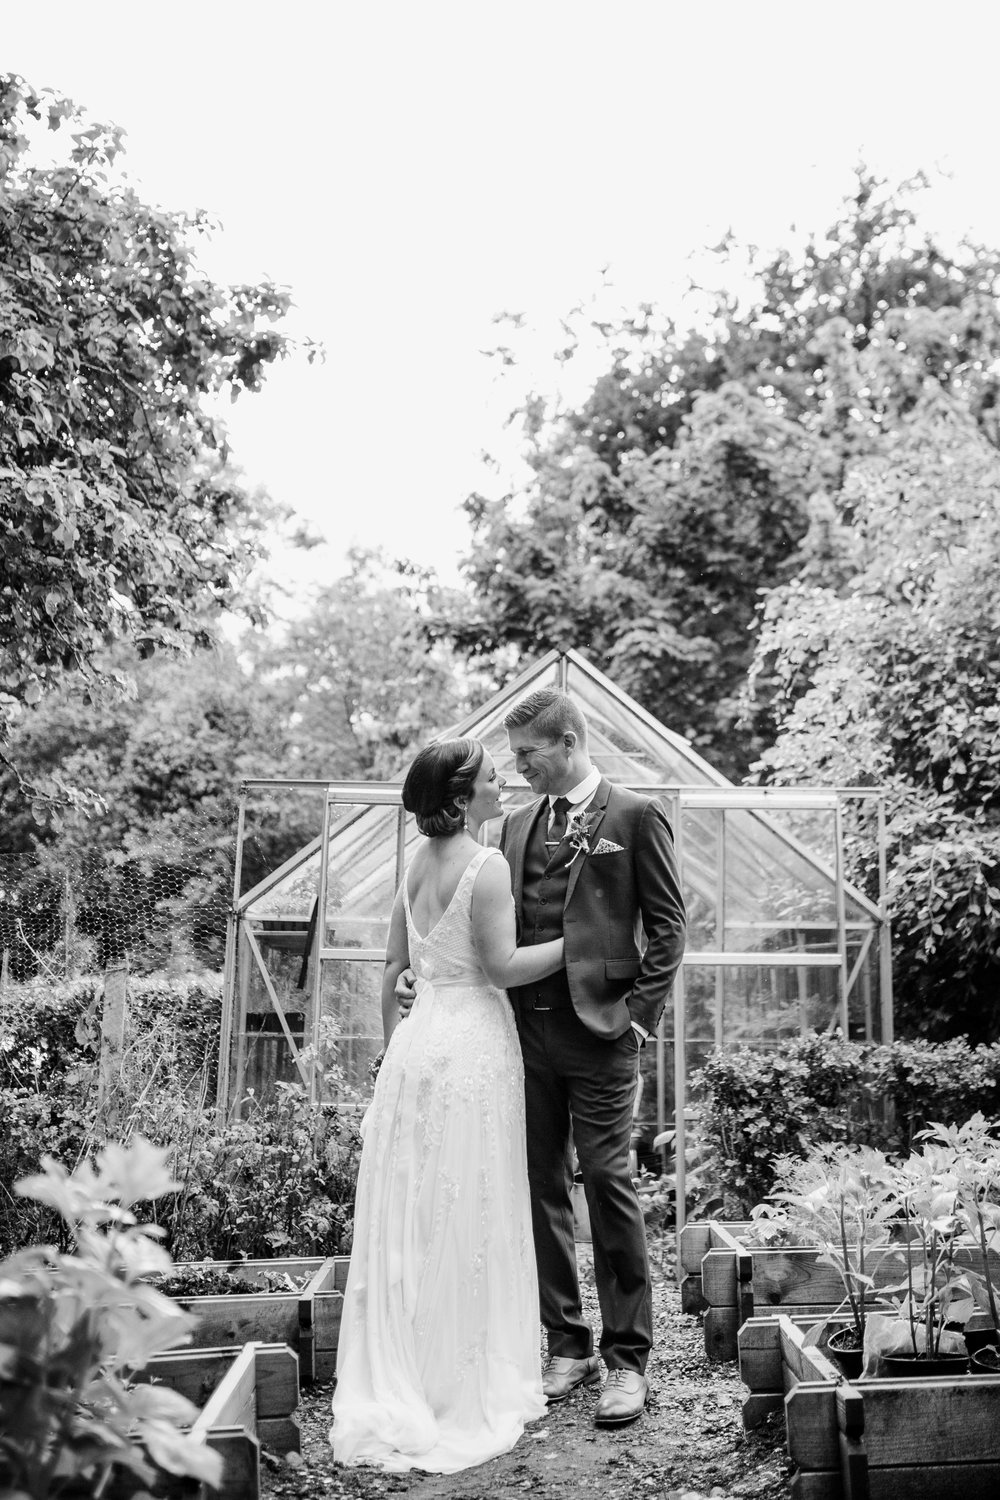 e+t_ballilogue_kilkenny_wedding_photographer_liviafigueiredo_150.JPG